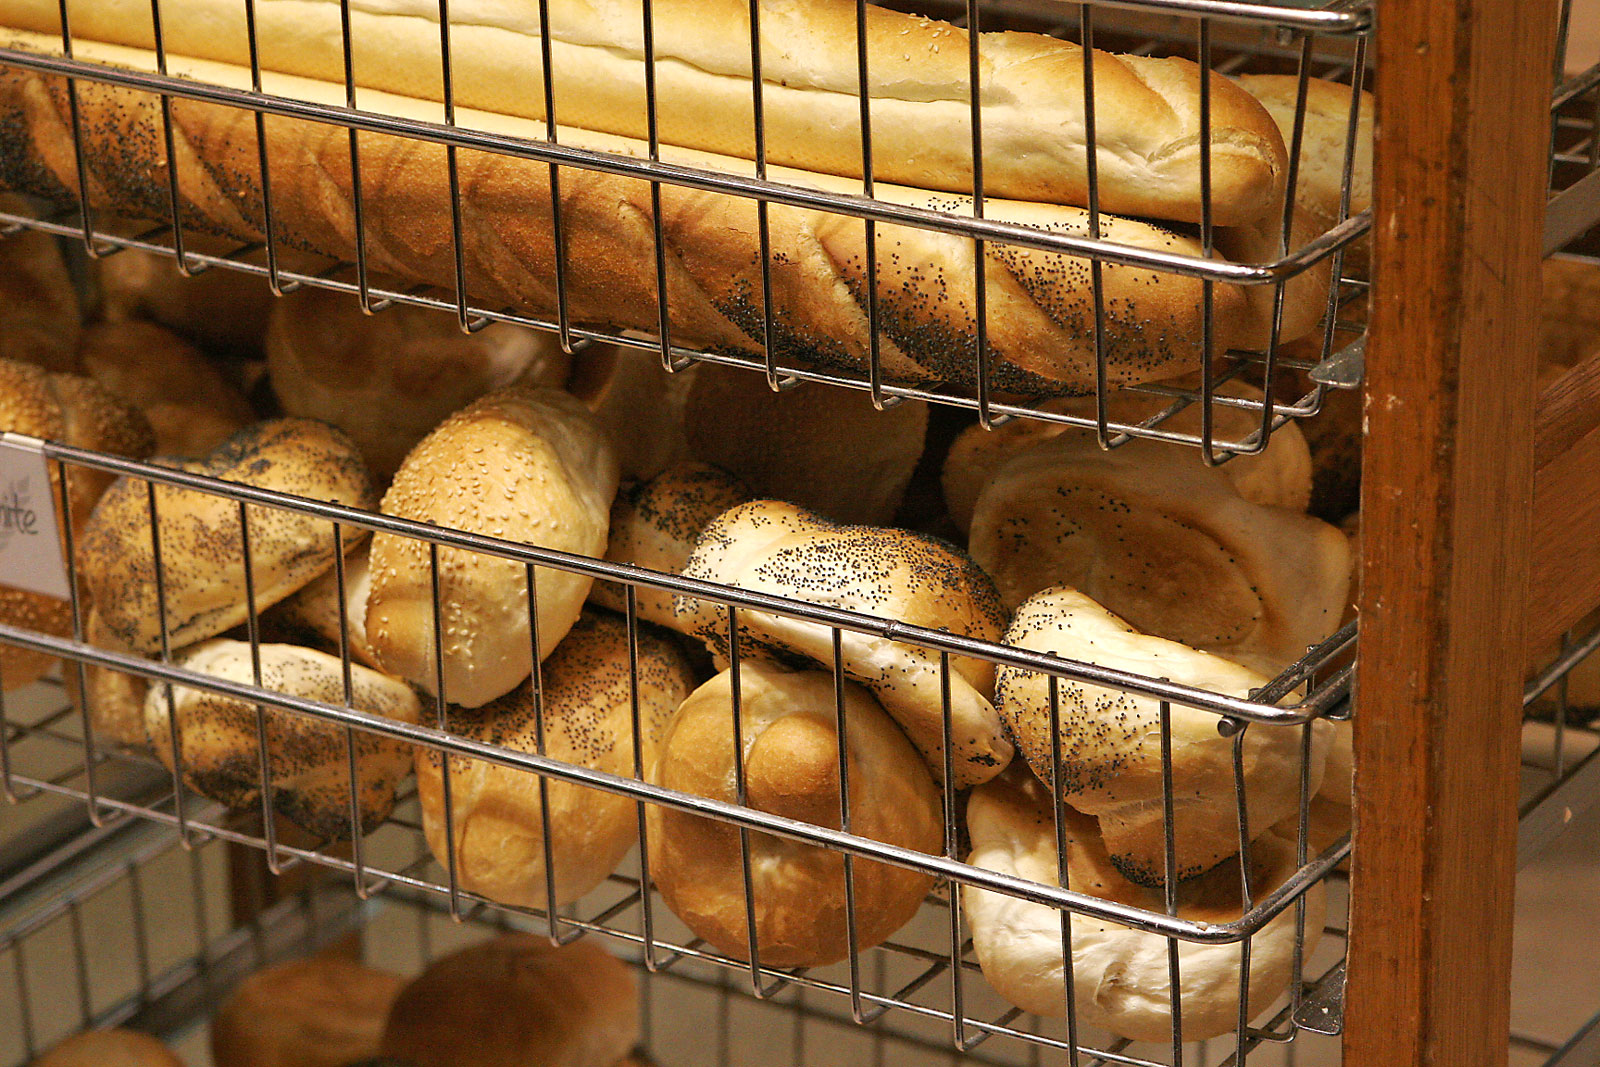 File:Bread rolls at a bakery.jpg - Wikipedia, the free encyclopedia